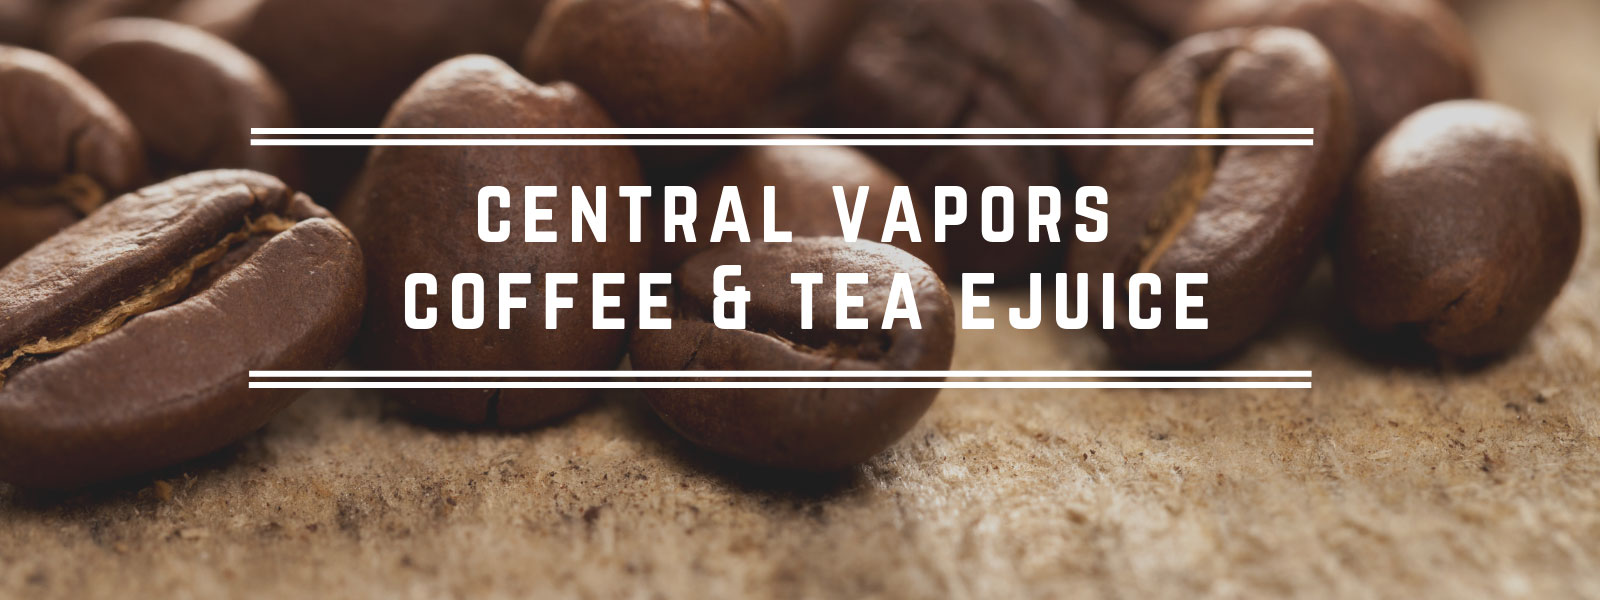 Coffee and Tea Ejuice